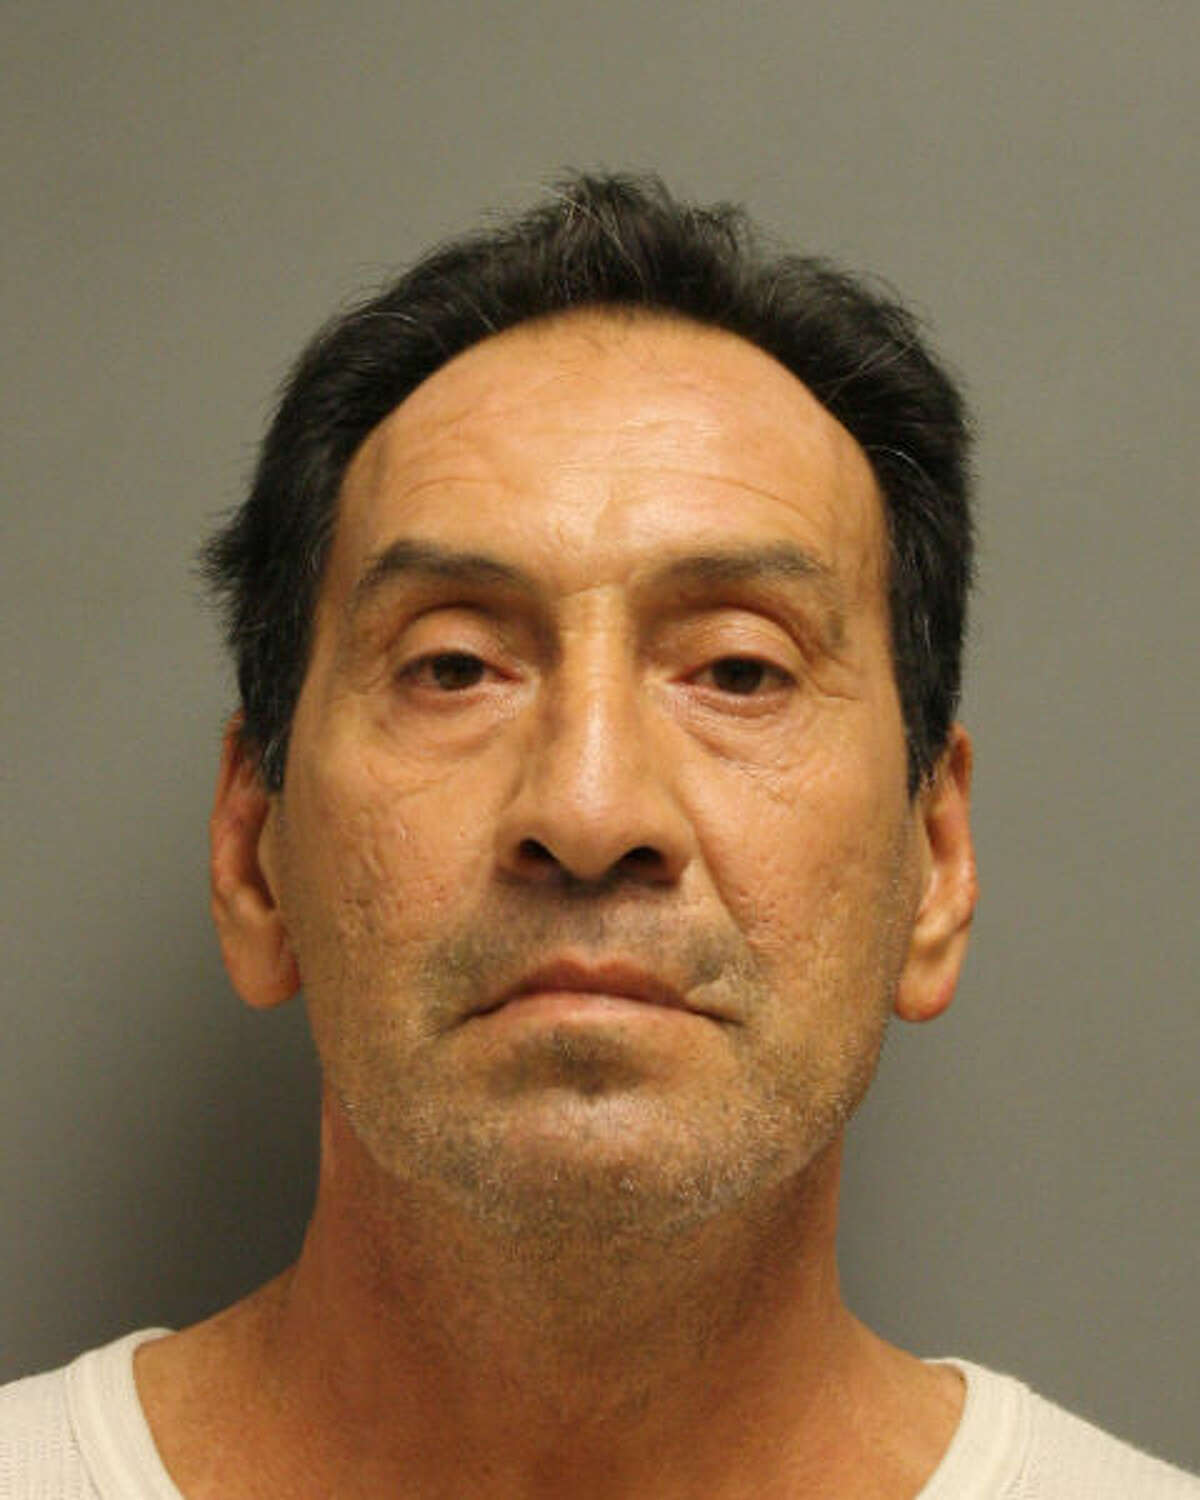 John Richard Vasquez, 60, was charged with murder after allegedly crashing into a 55-year-old man on the side of the South Loop 610, killing him.